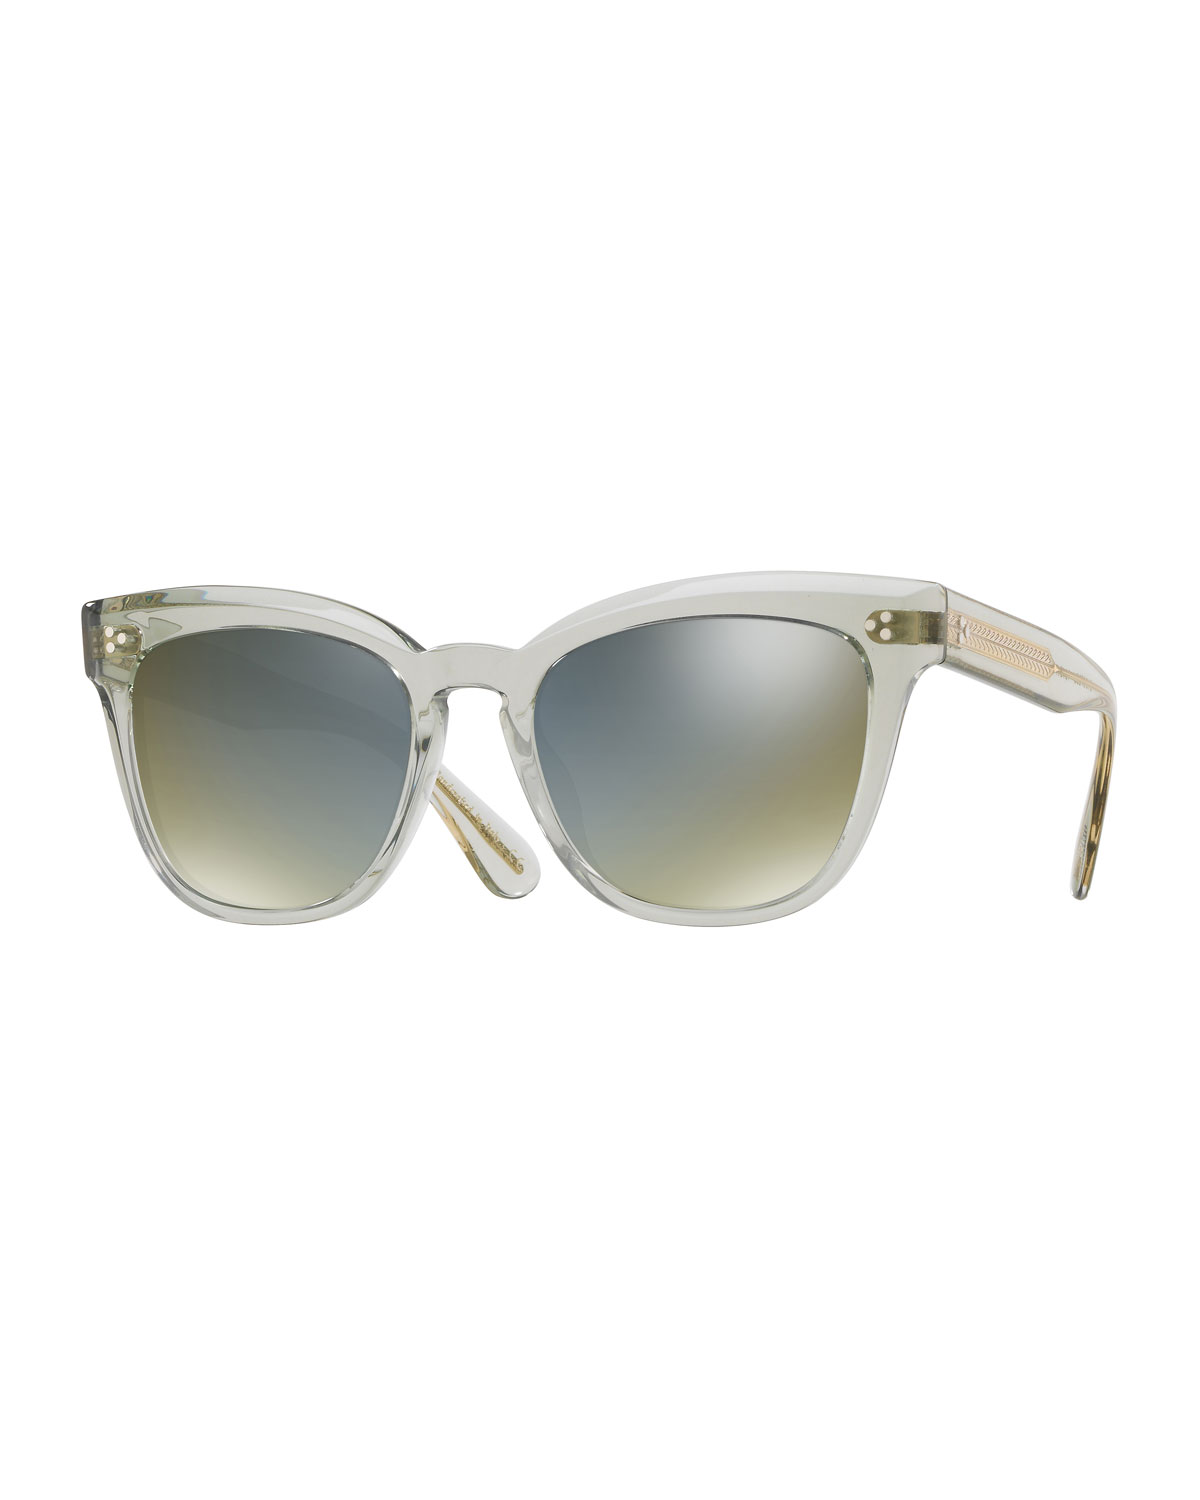 80368624b5 Oliver Peoples Marianela Rounded Plastic Mirrored Sunglasses ...